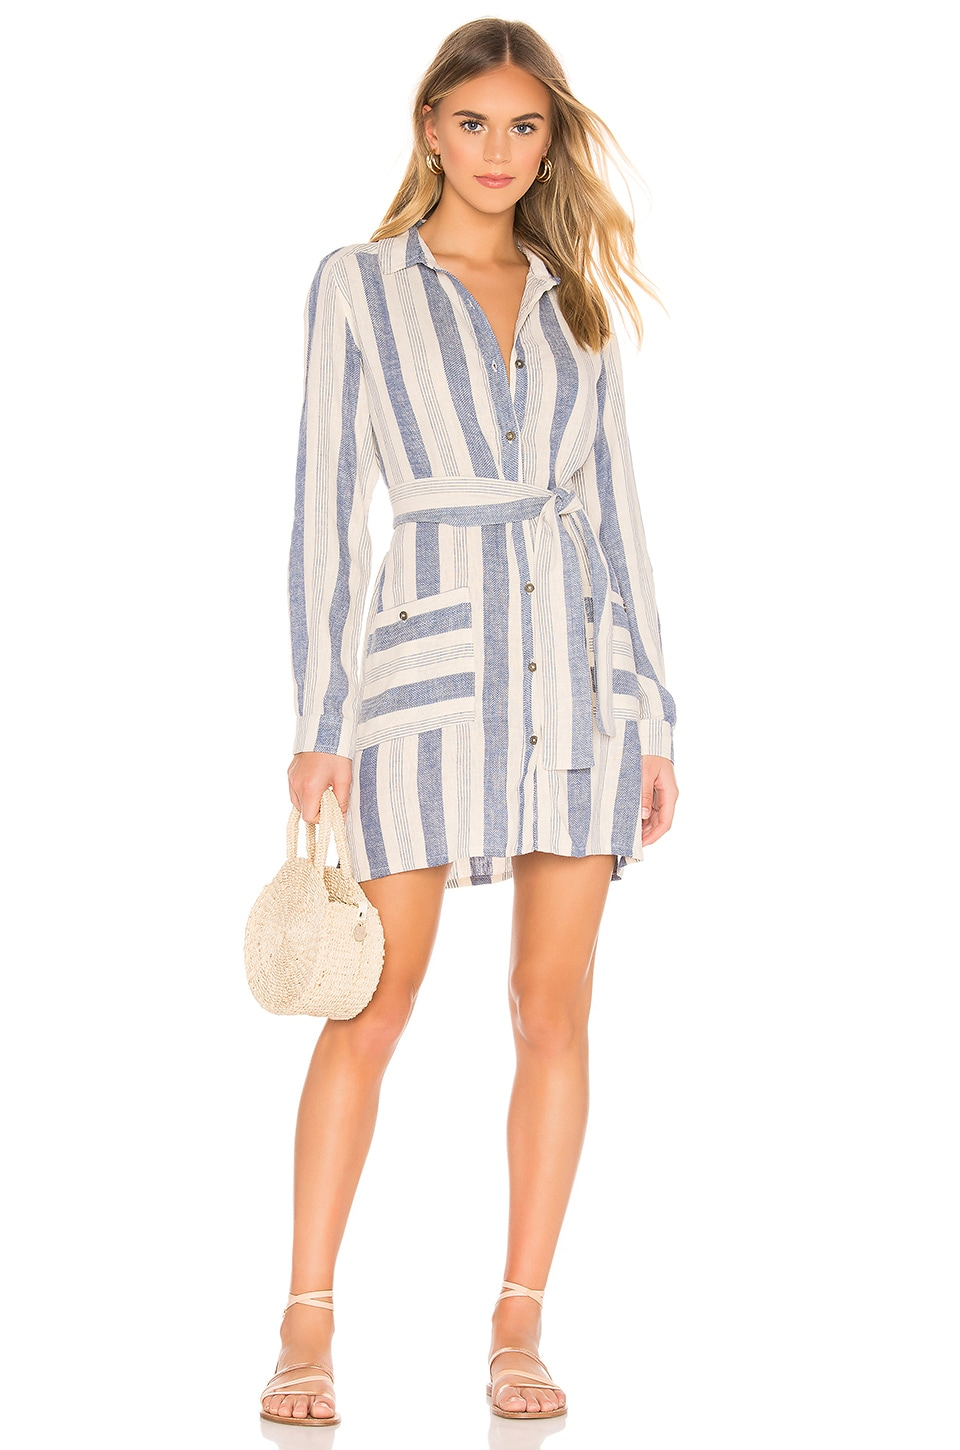 Jen's Pirate Booty Isla Jacket Dress in Nautical Stripe